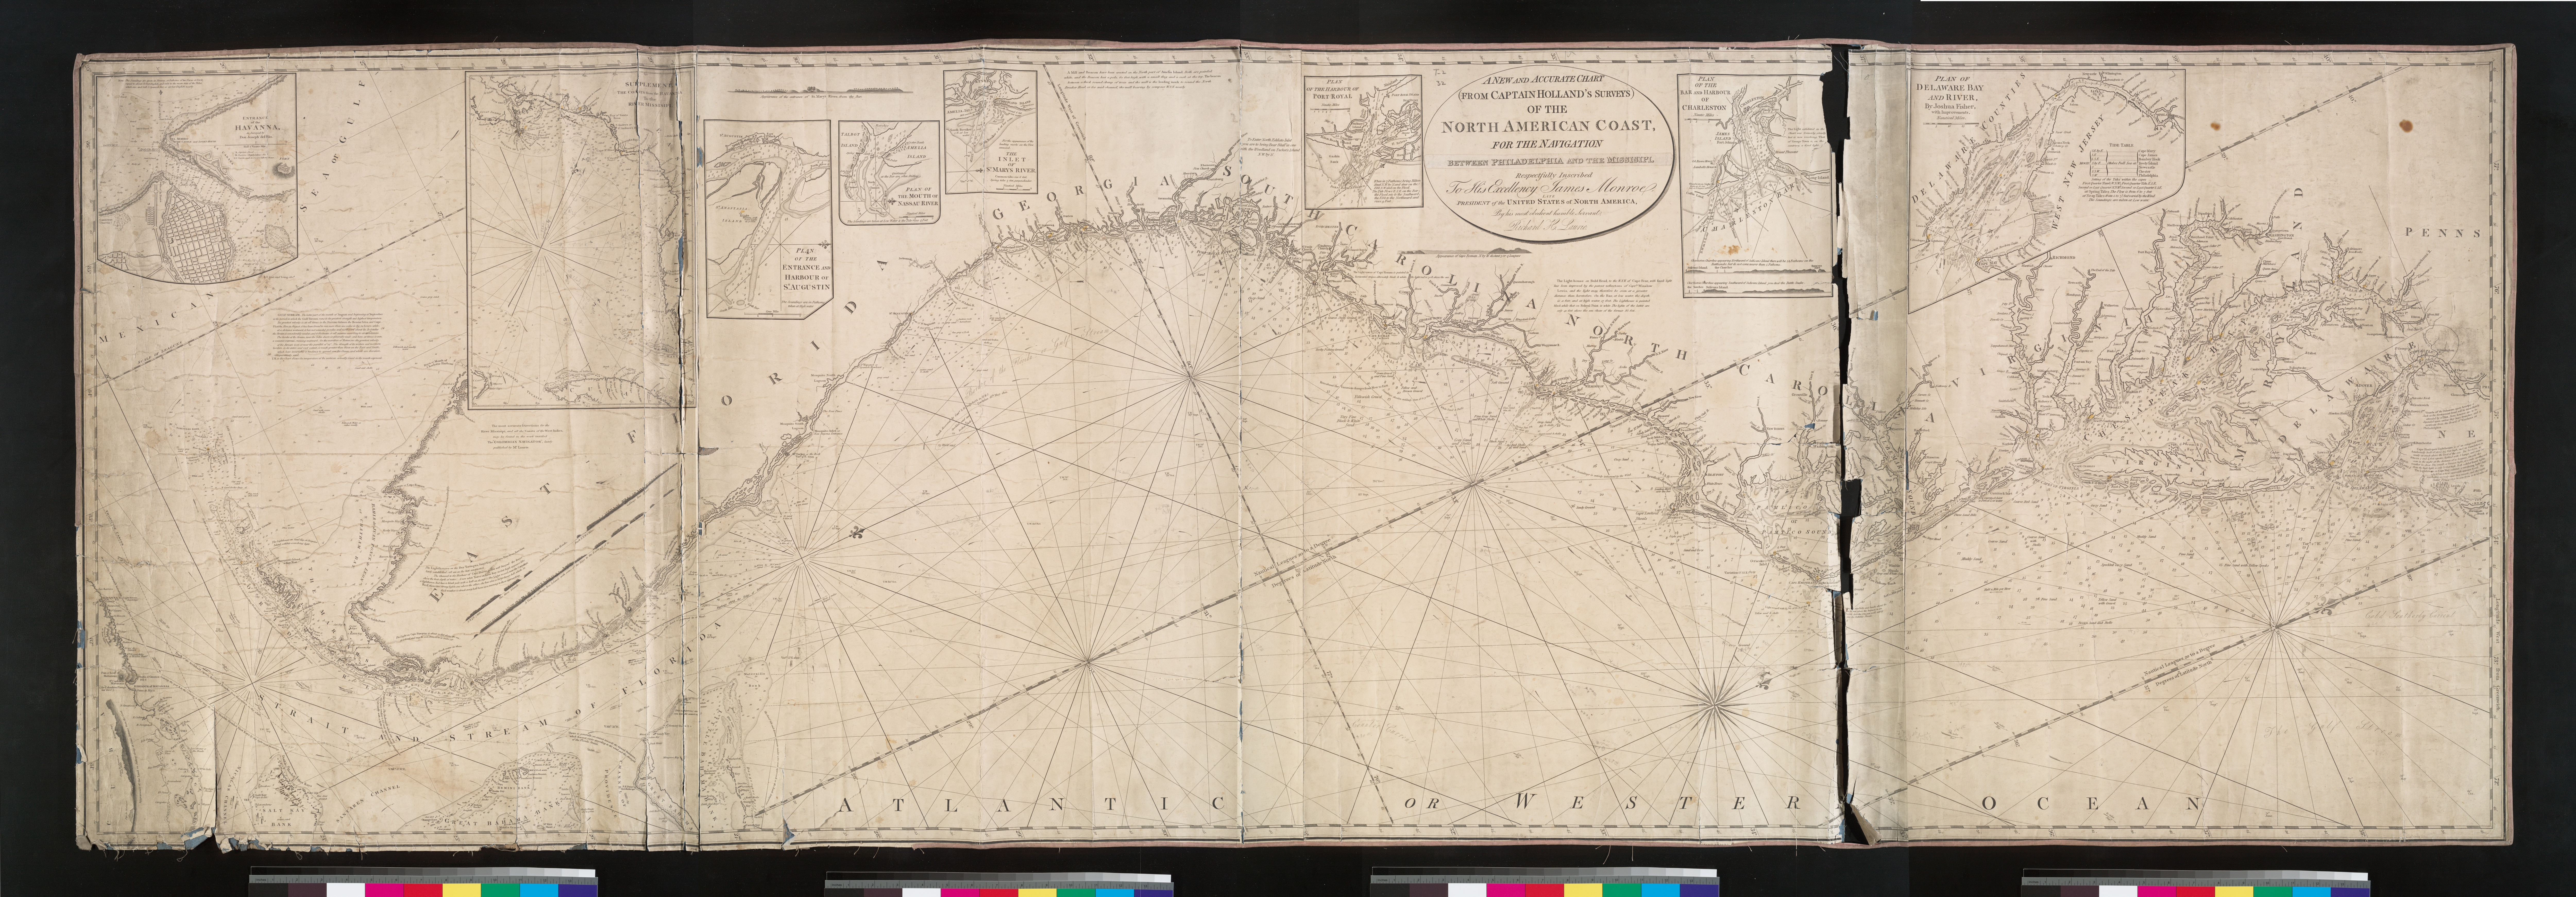 Cape Cod Florida Map.File A New And Accurate Chart From Captain Holland S Surveys Of